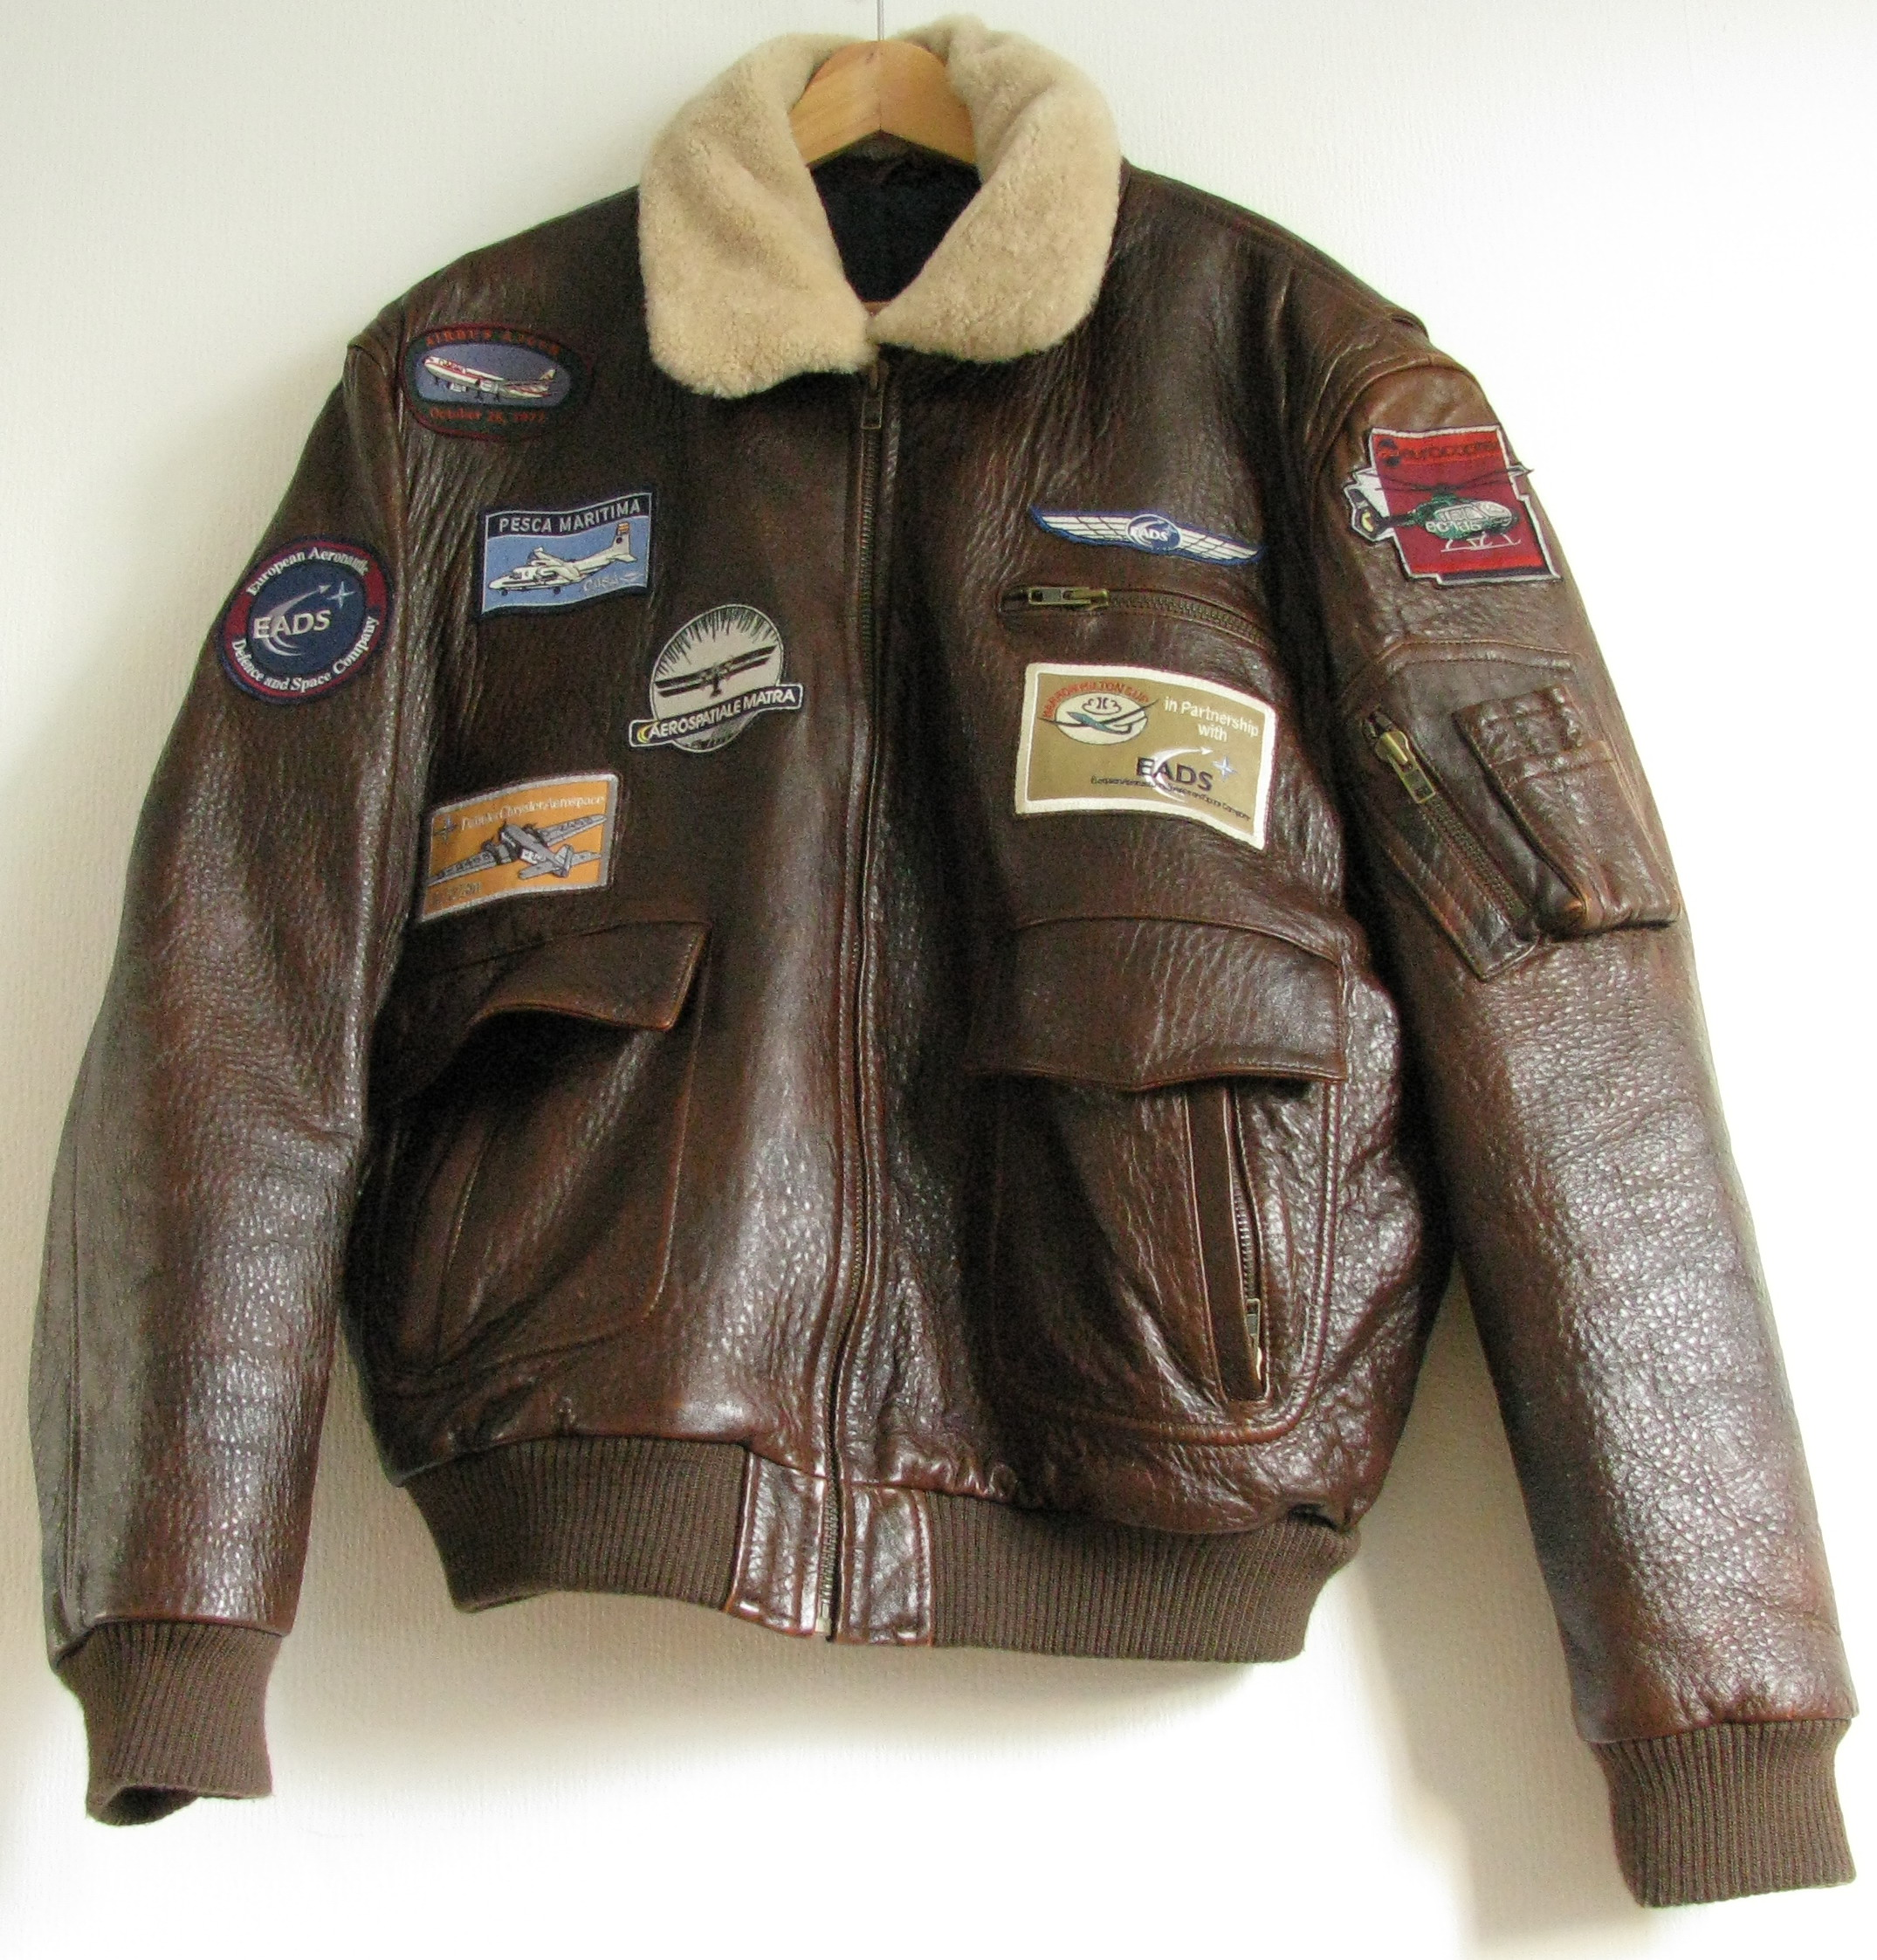 Fliegerjacke – Wikipedia